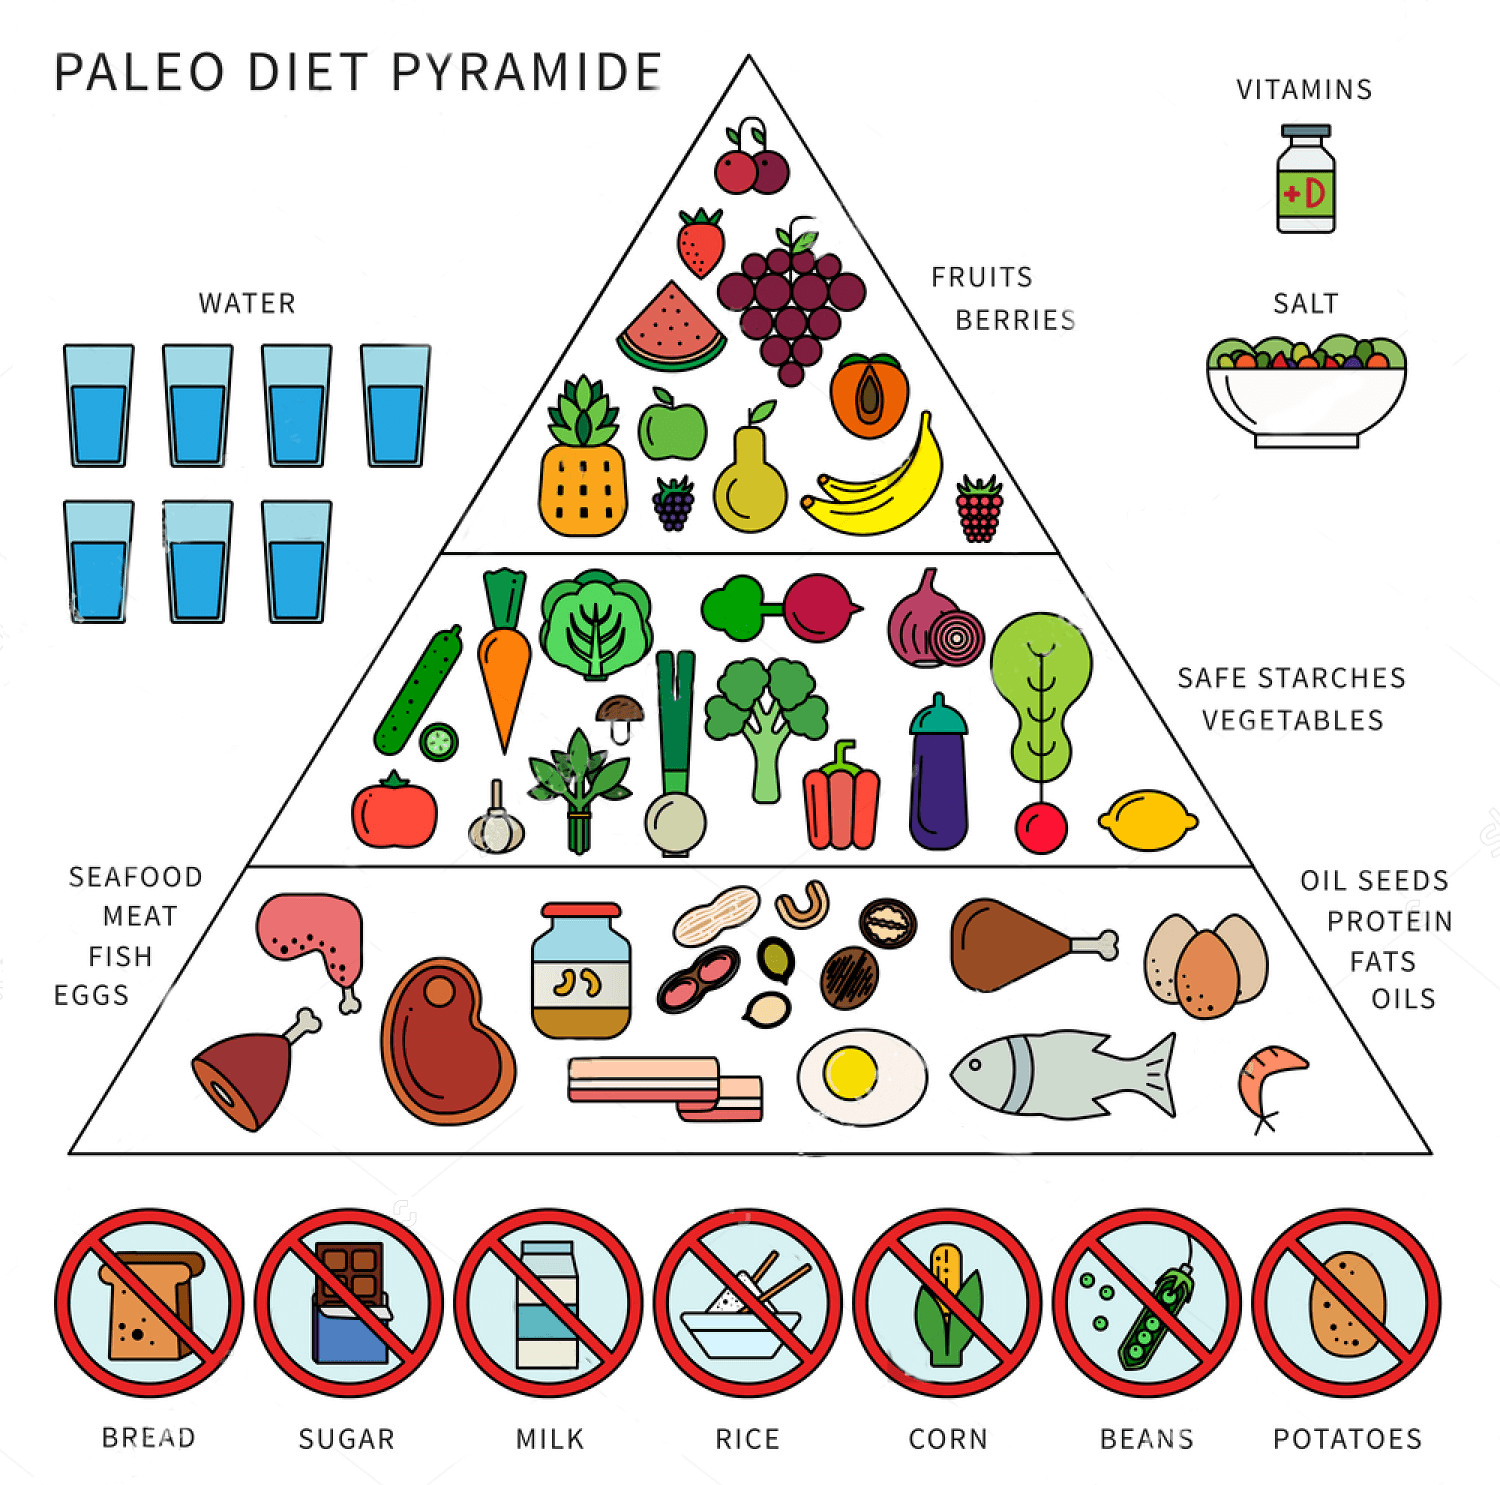 Paleo Diet Plan Pyramid